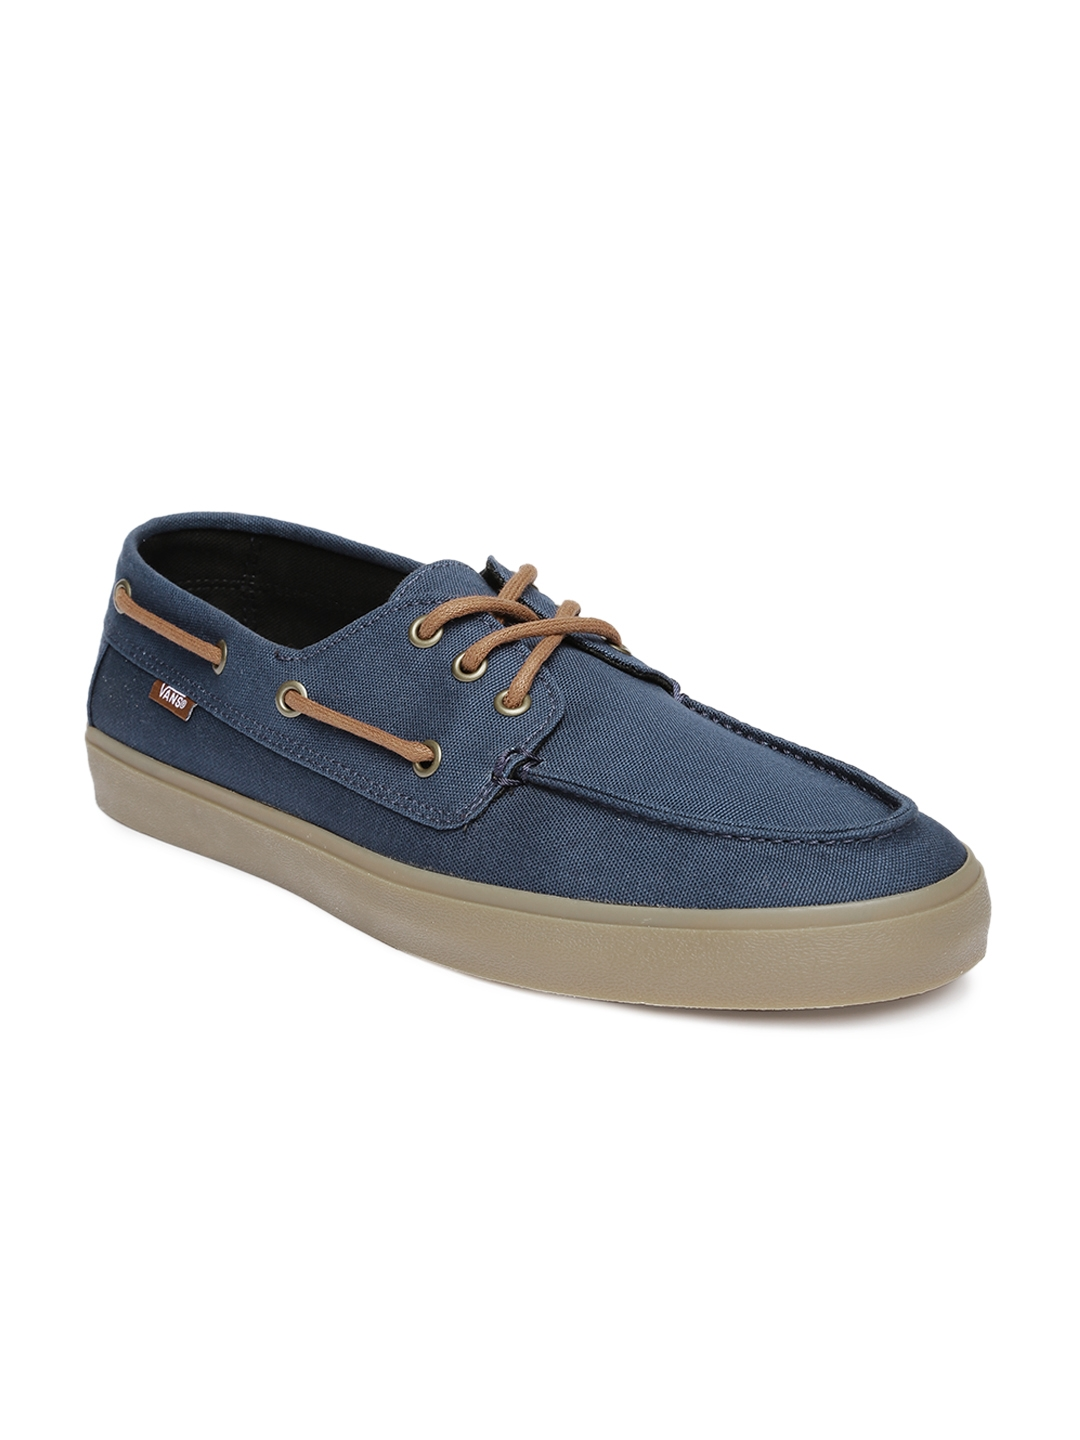 630d2125f093a4 Buy Vans Men Navy Chauffeur SF Boat Shoes - Casual Shoes for Men ...